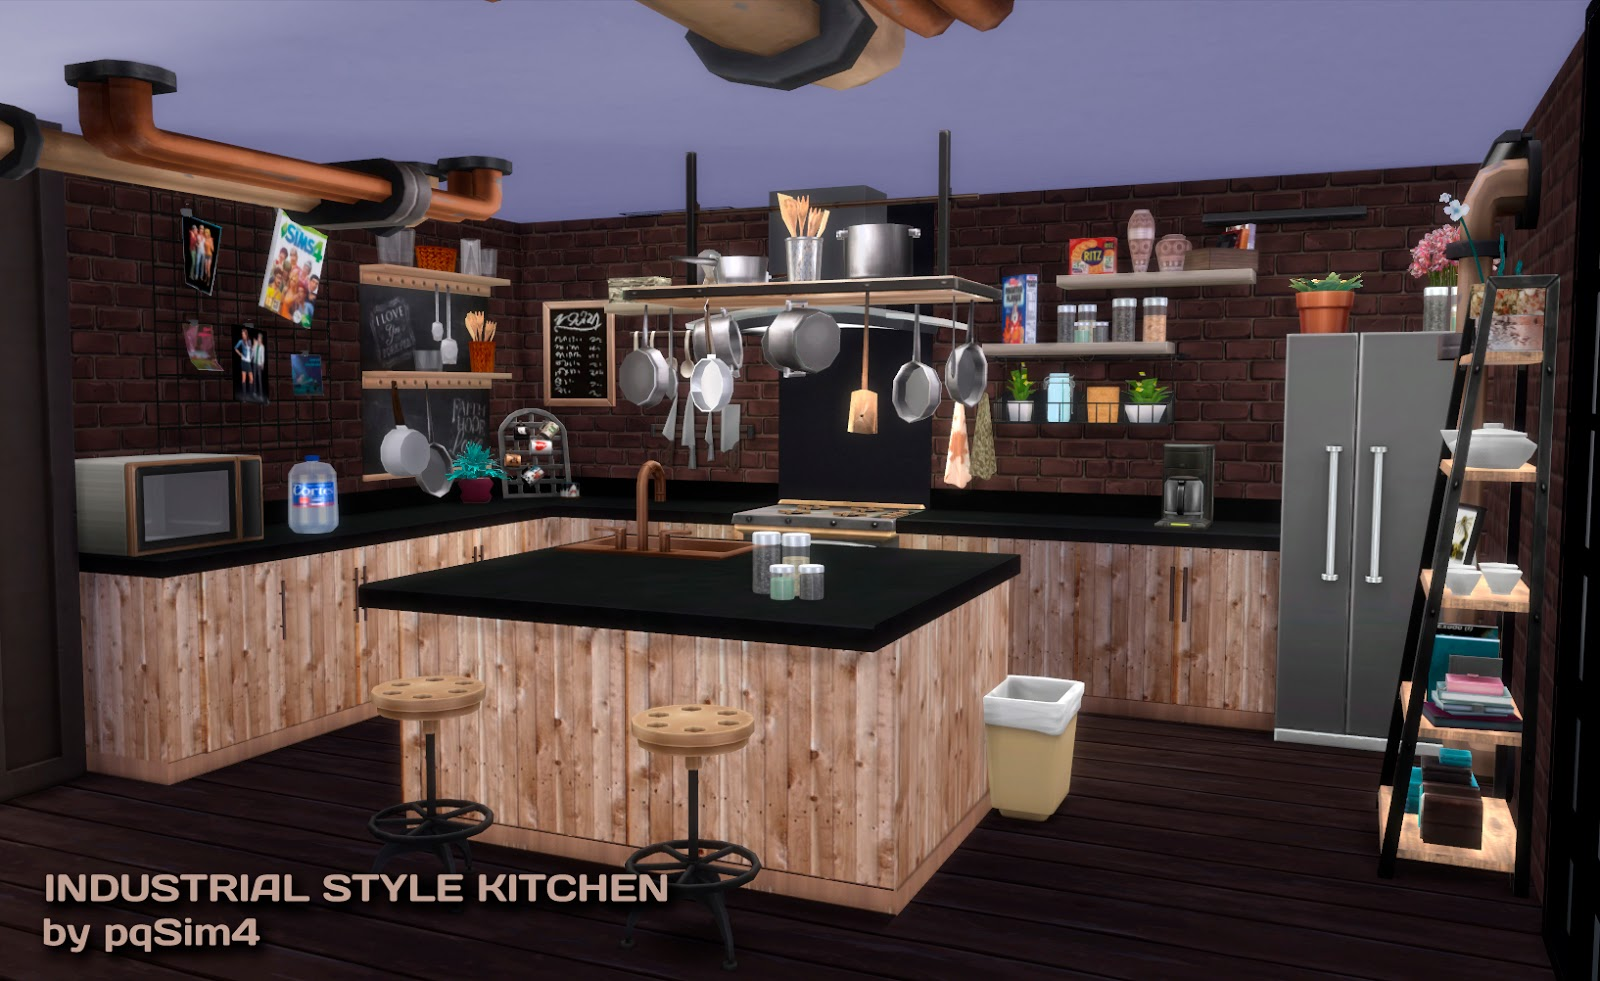 My Sims 4 Blog: Industrial Kitchen Set by pqsim4